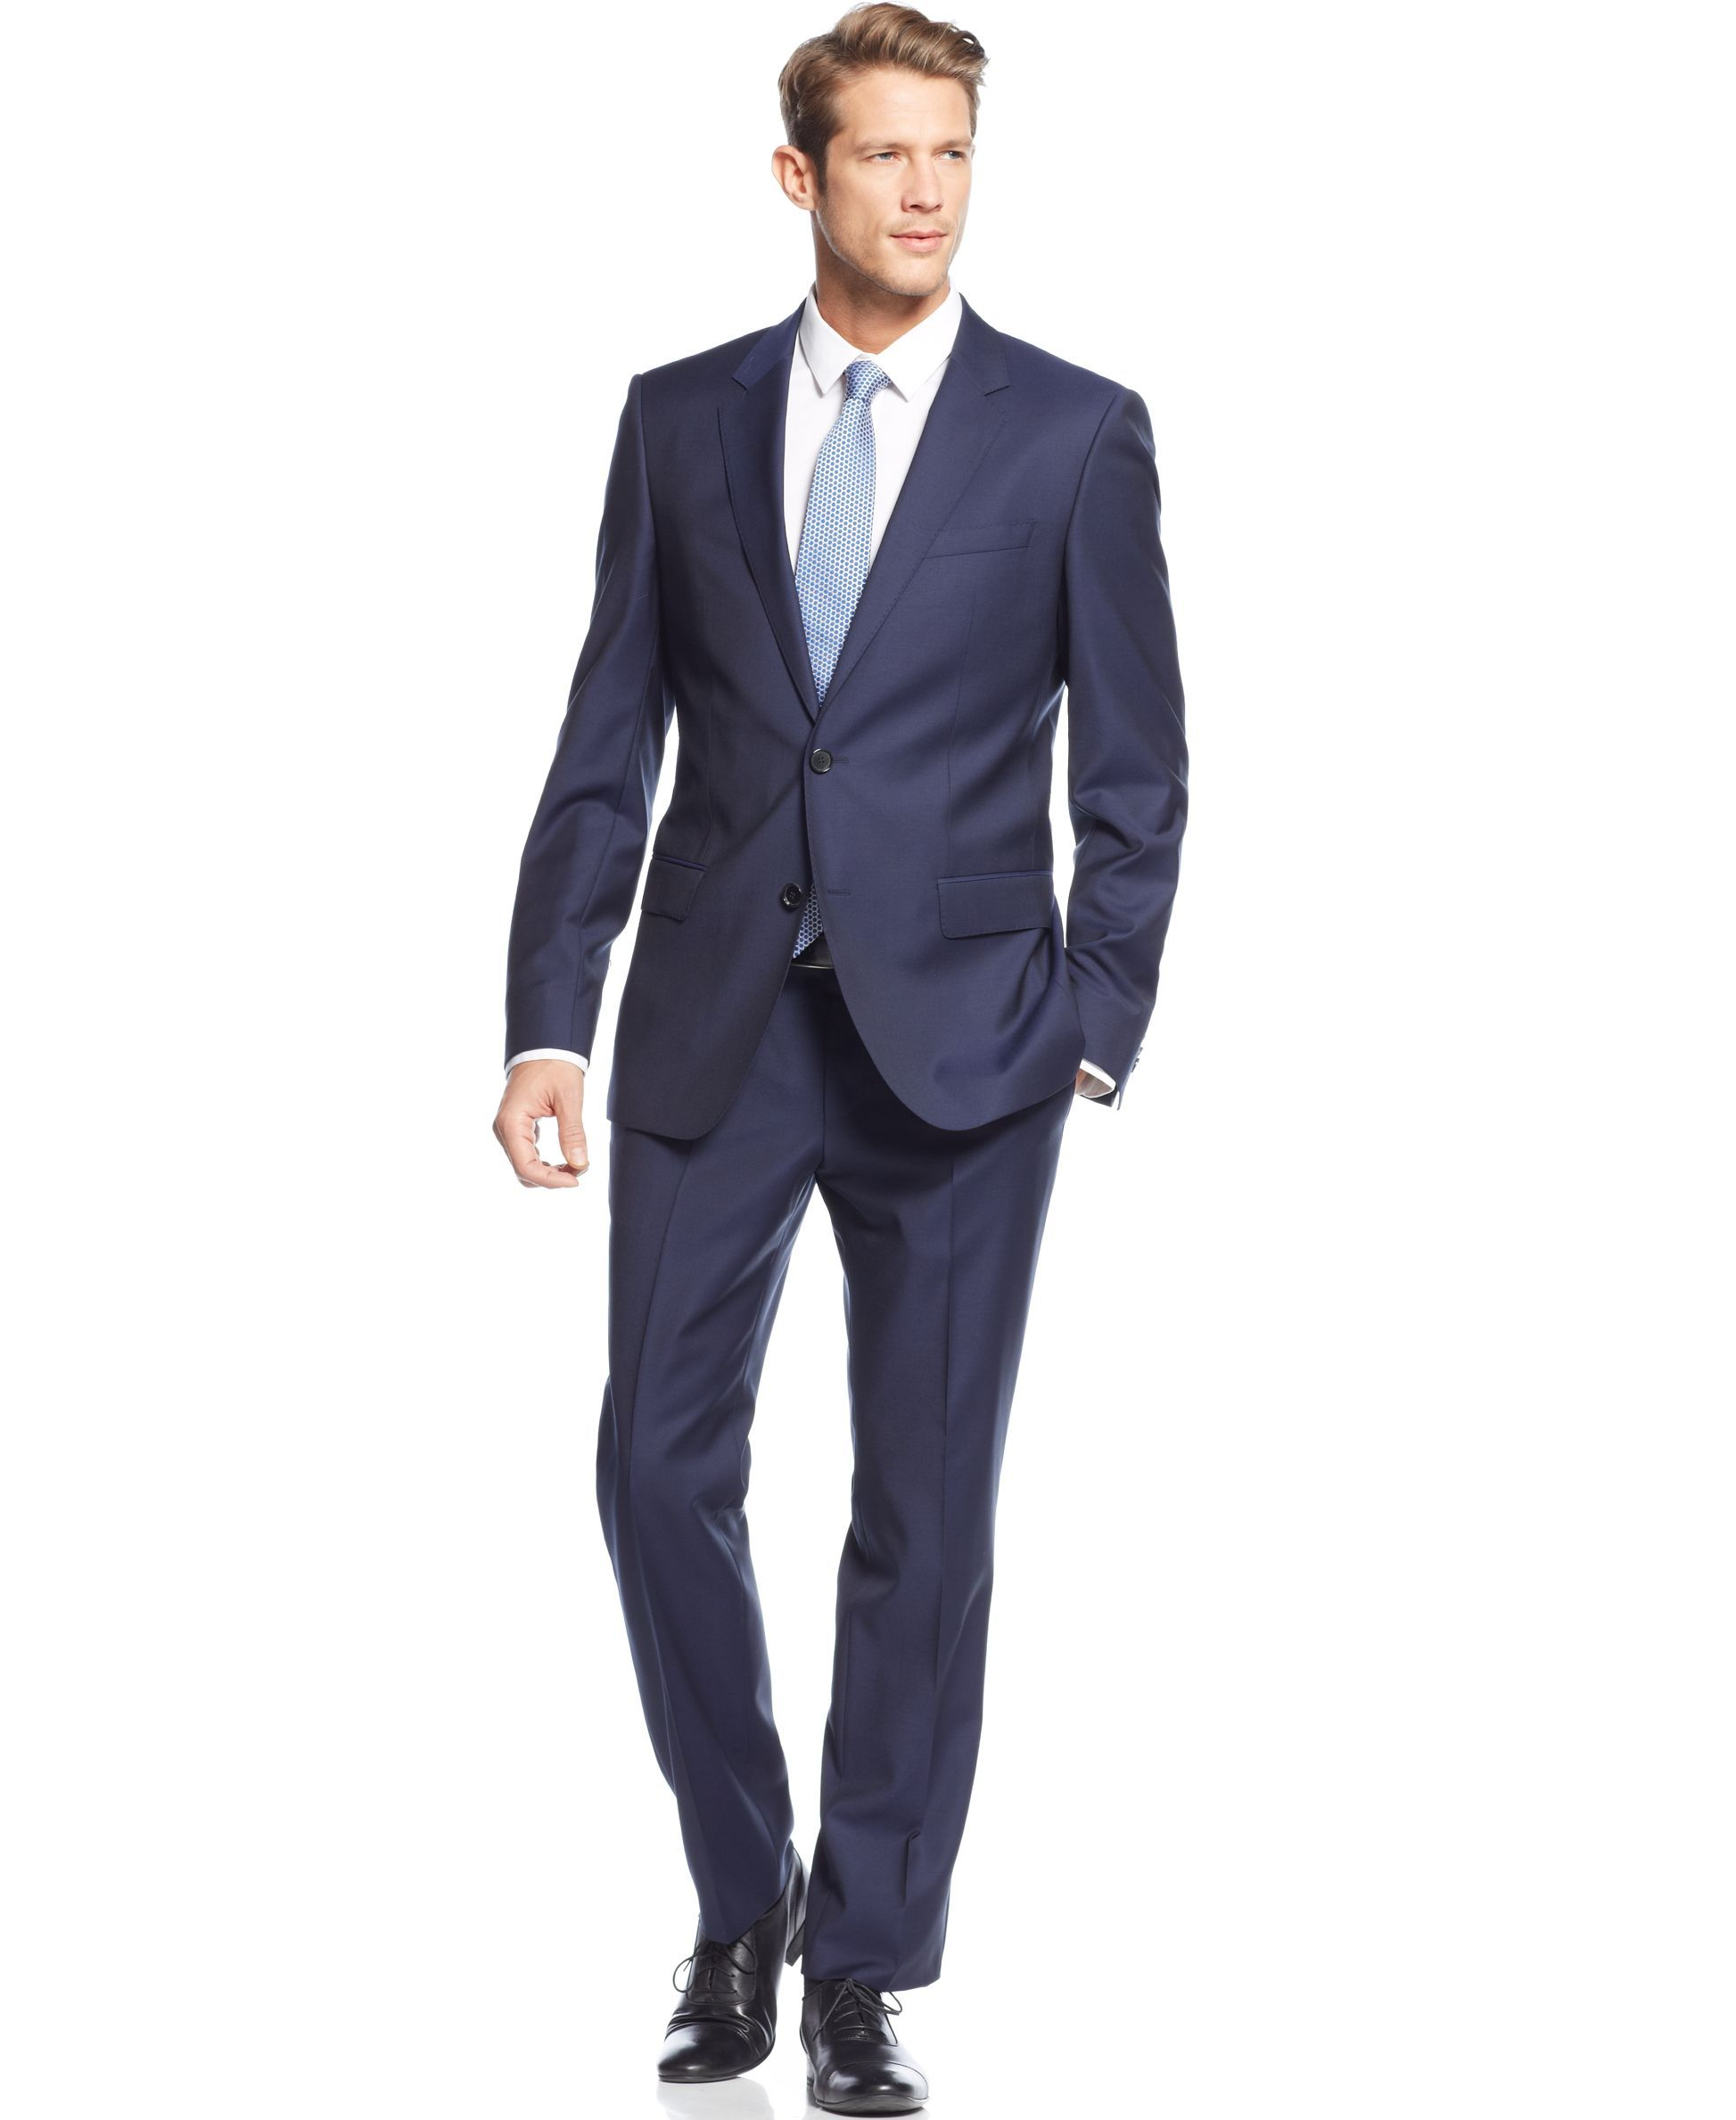 011f5a4805 Boss Hugo Boss Navy Solid Slim-Fit Suit | Products | Fitted suit ...